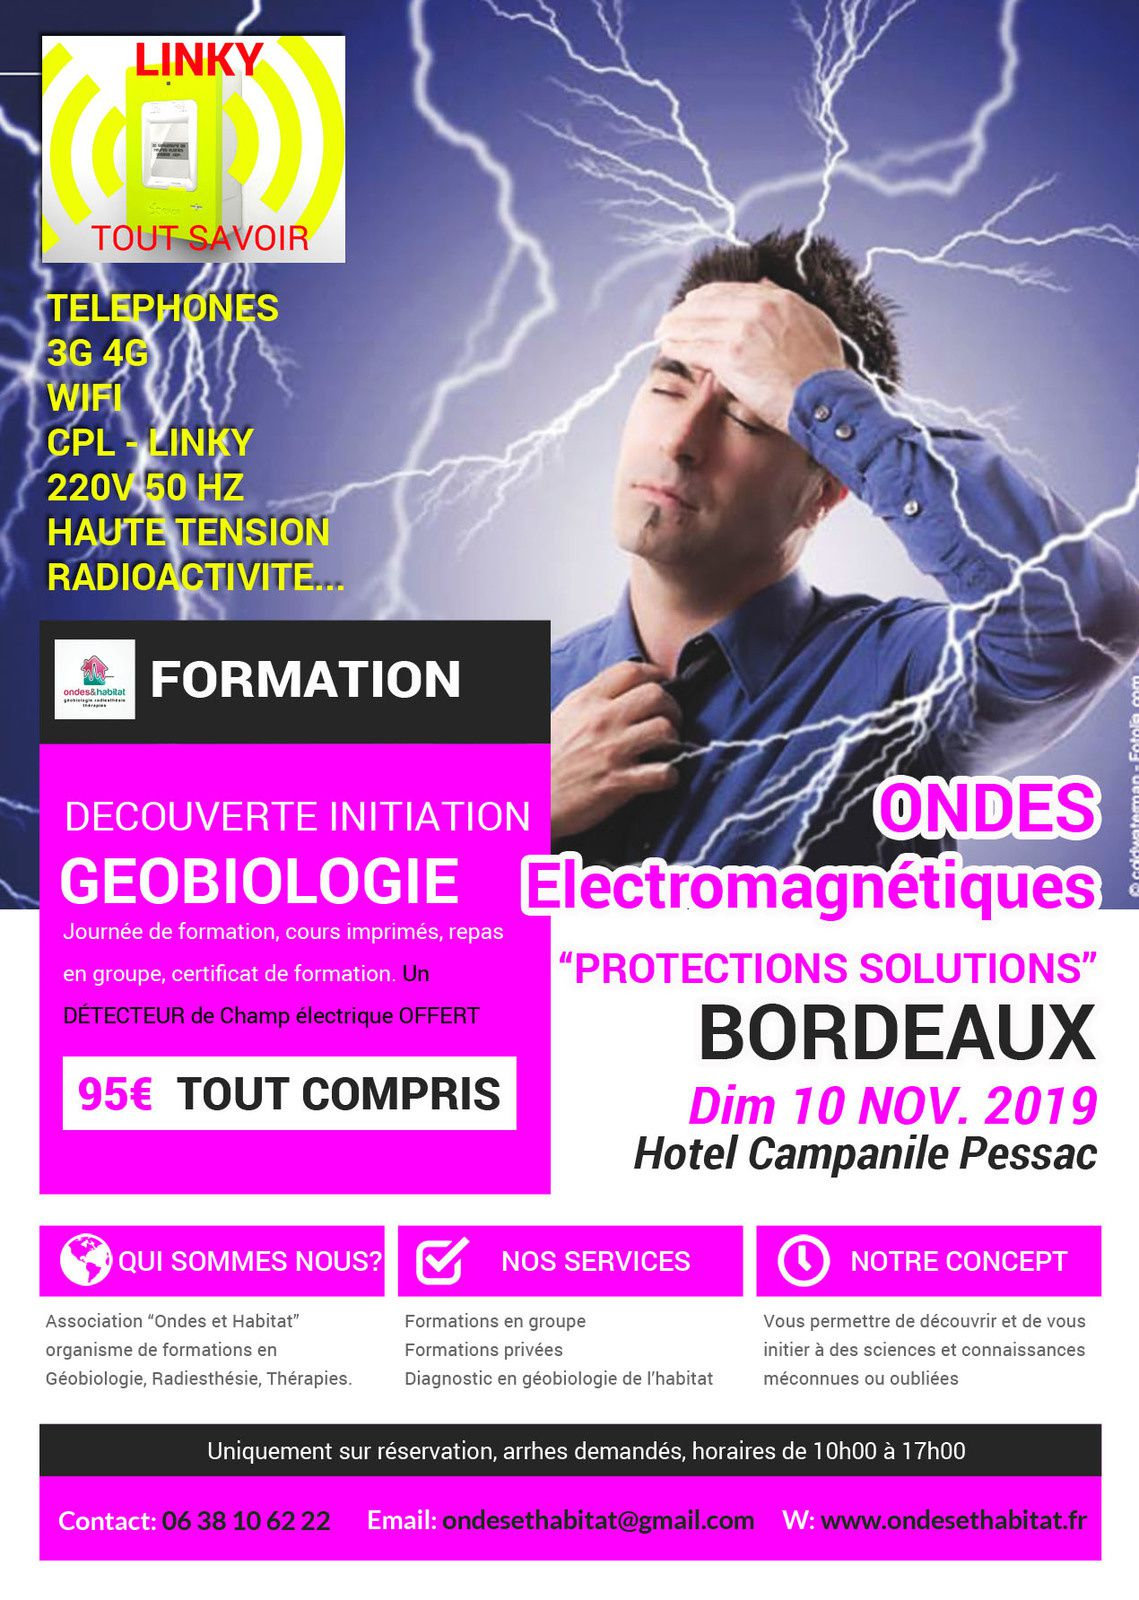 BORDEAUX Formation : Ondes Electro, Protections Solutions Dim 10 Nov 2019